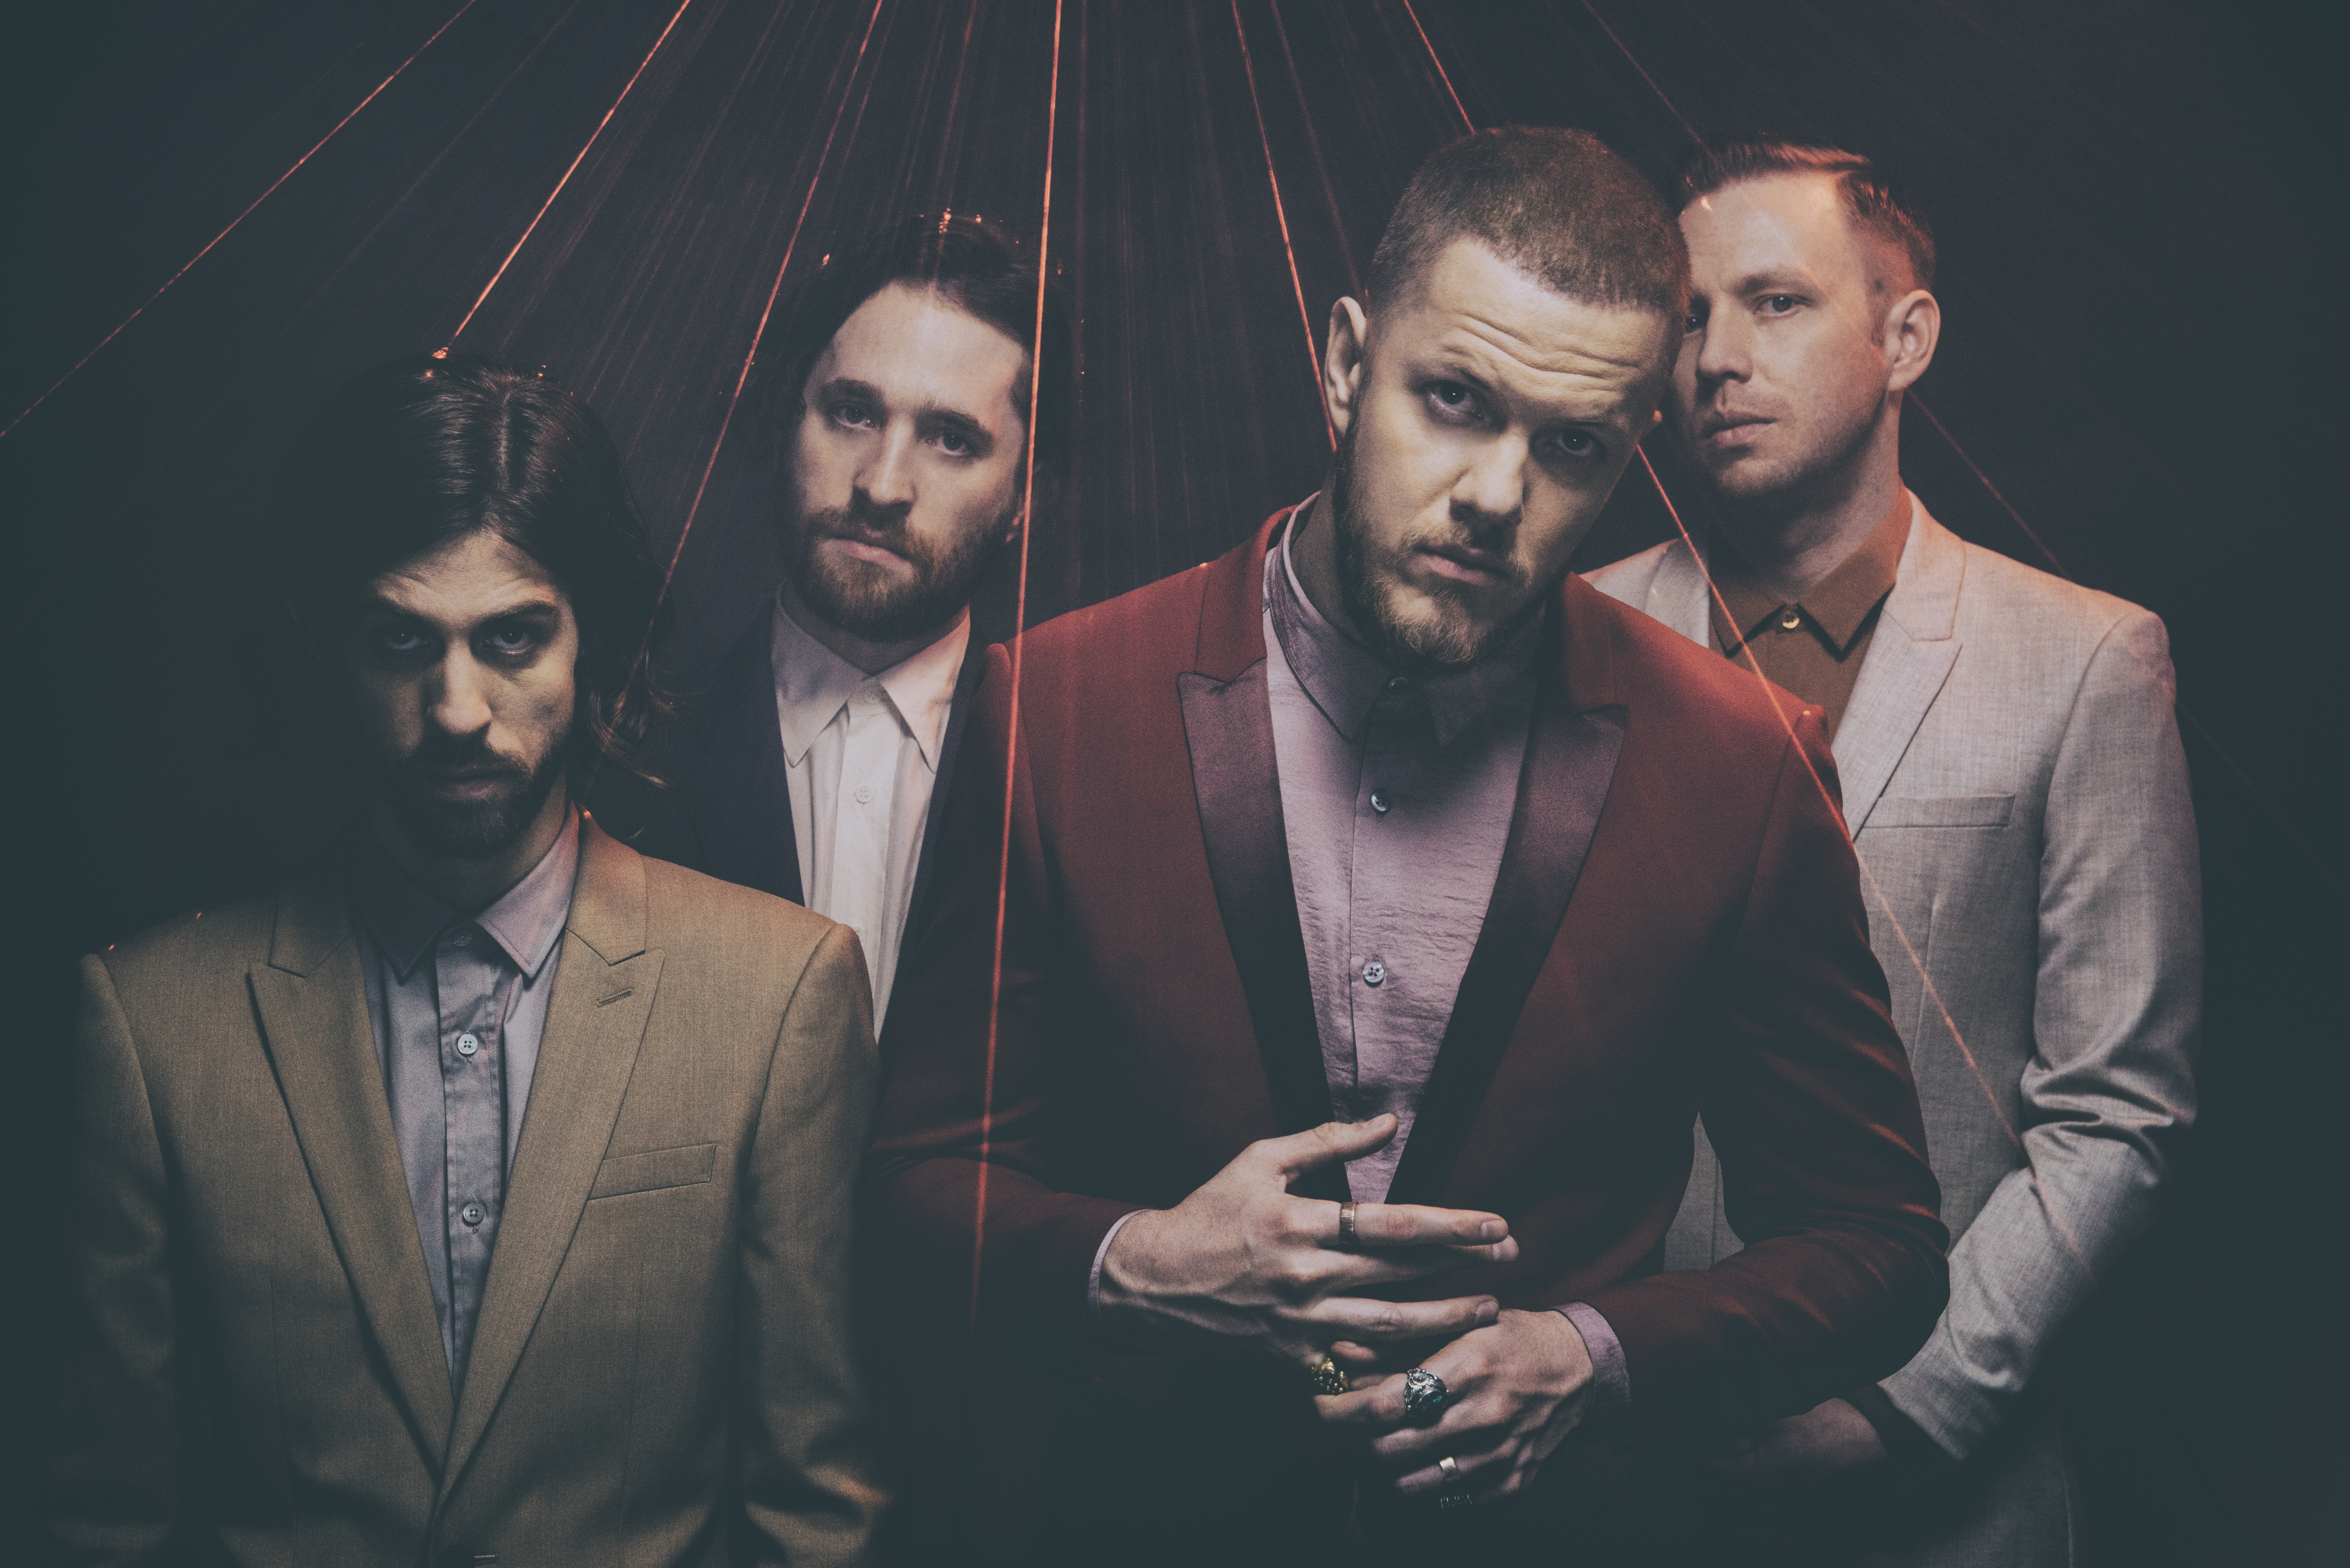 imagine dragons  Review: Imagine Dragons' 'Evolve' – Rolling Stone